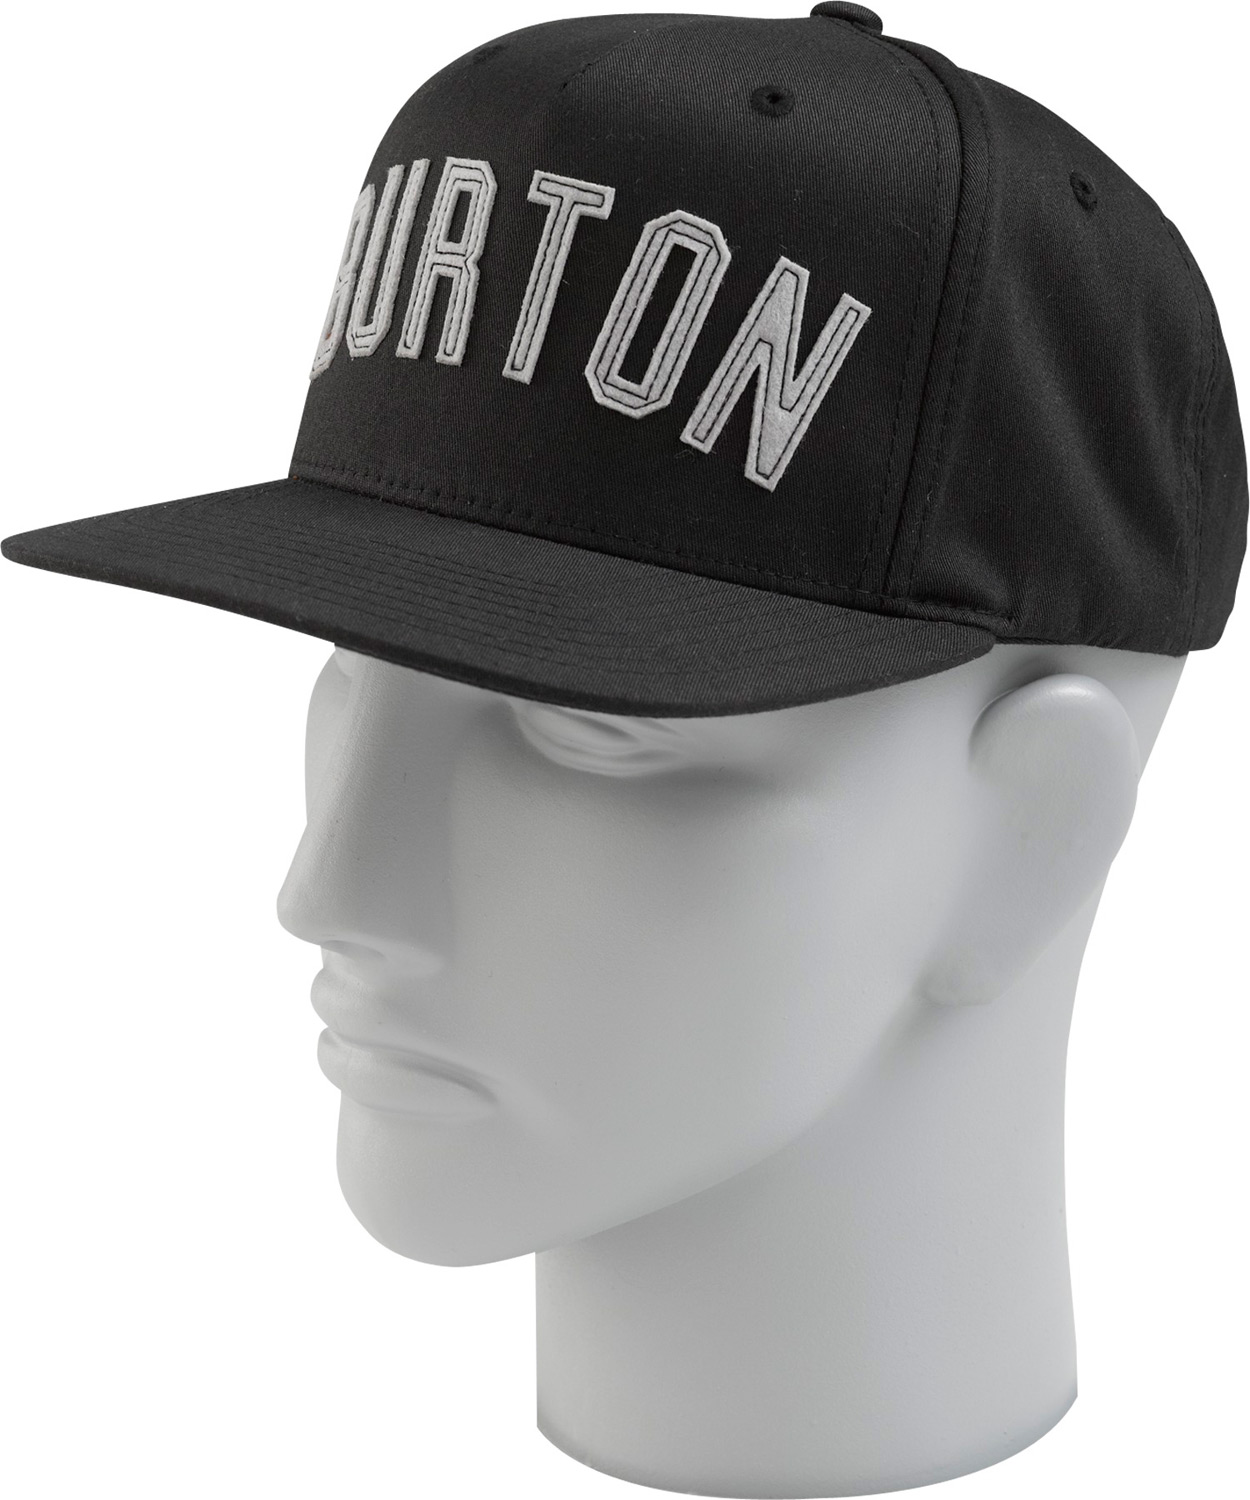 Snowboard Key Features of the Burton Canal Starter Cap: 98% Cotton/2% Spandex Flat Visor - $15.95